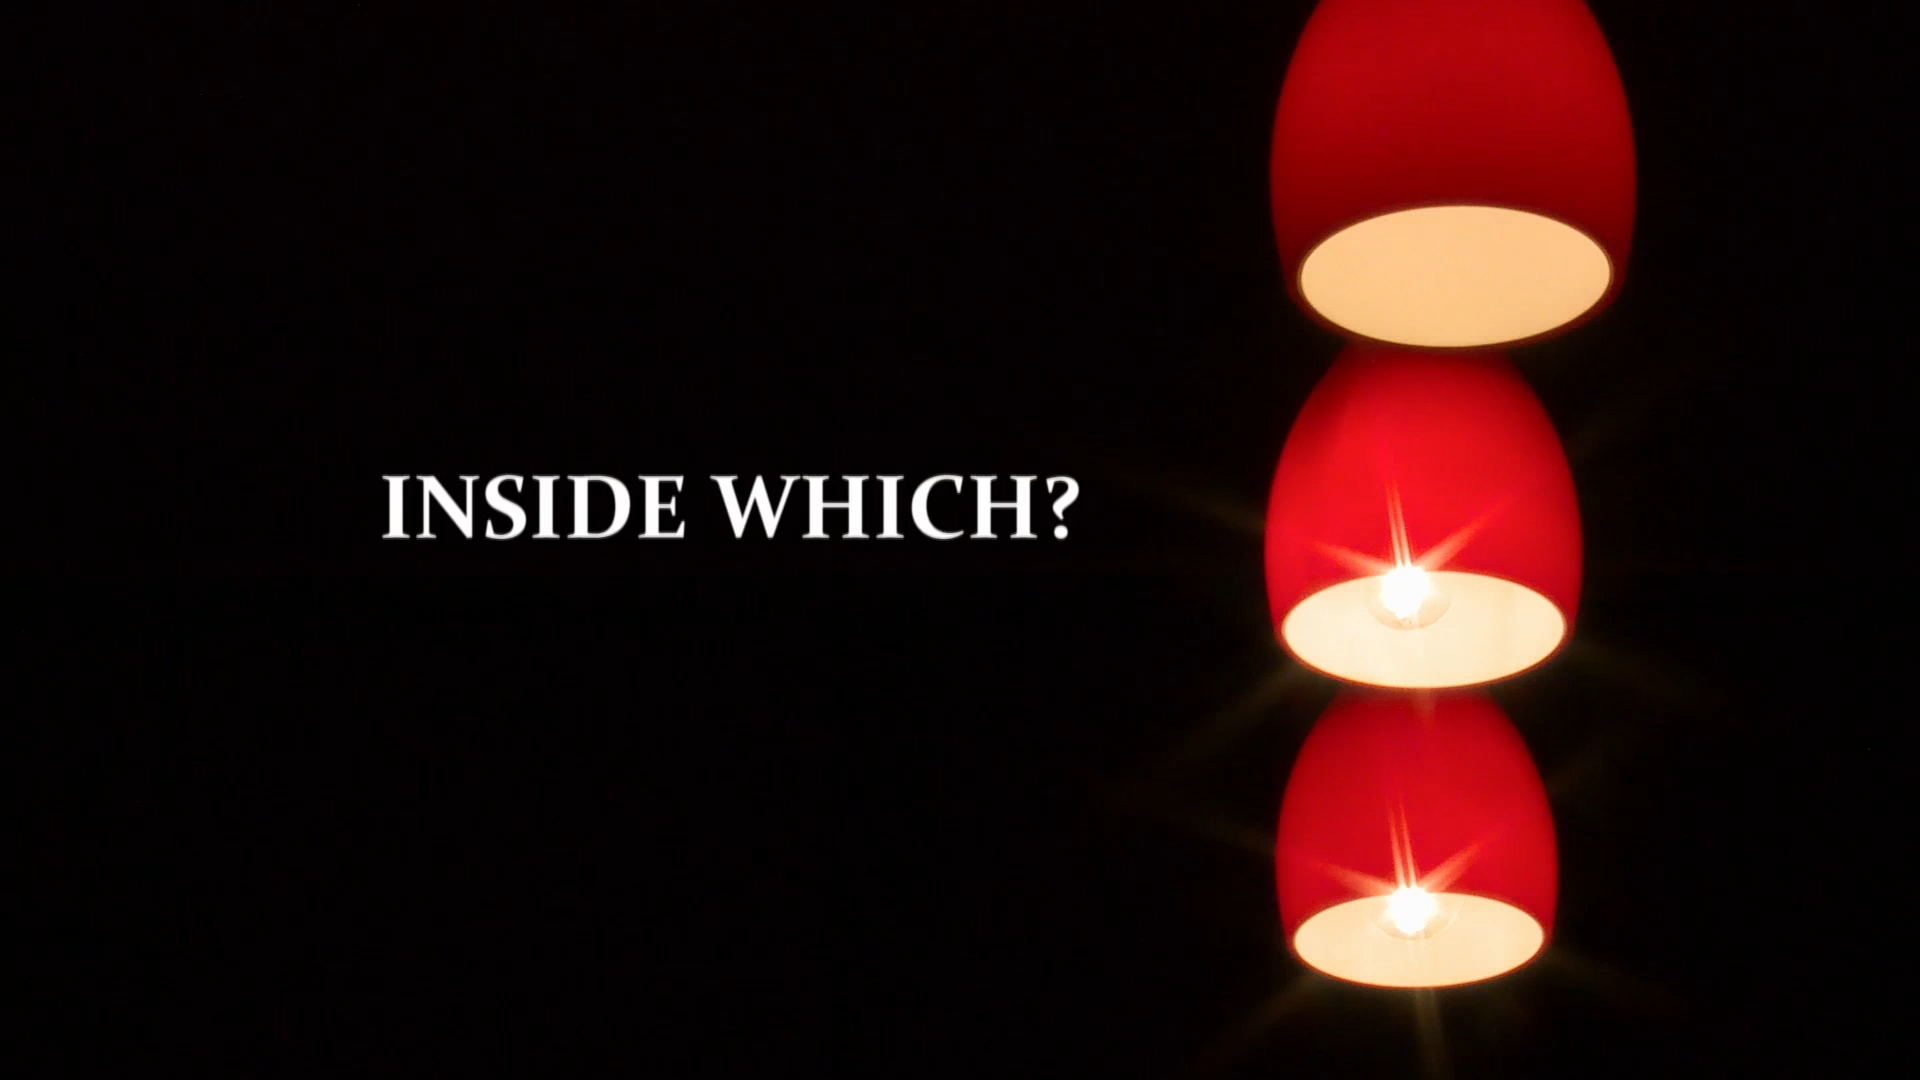 Inside Which?